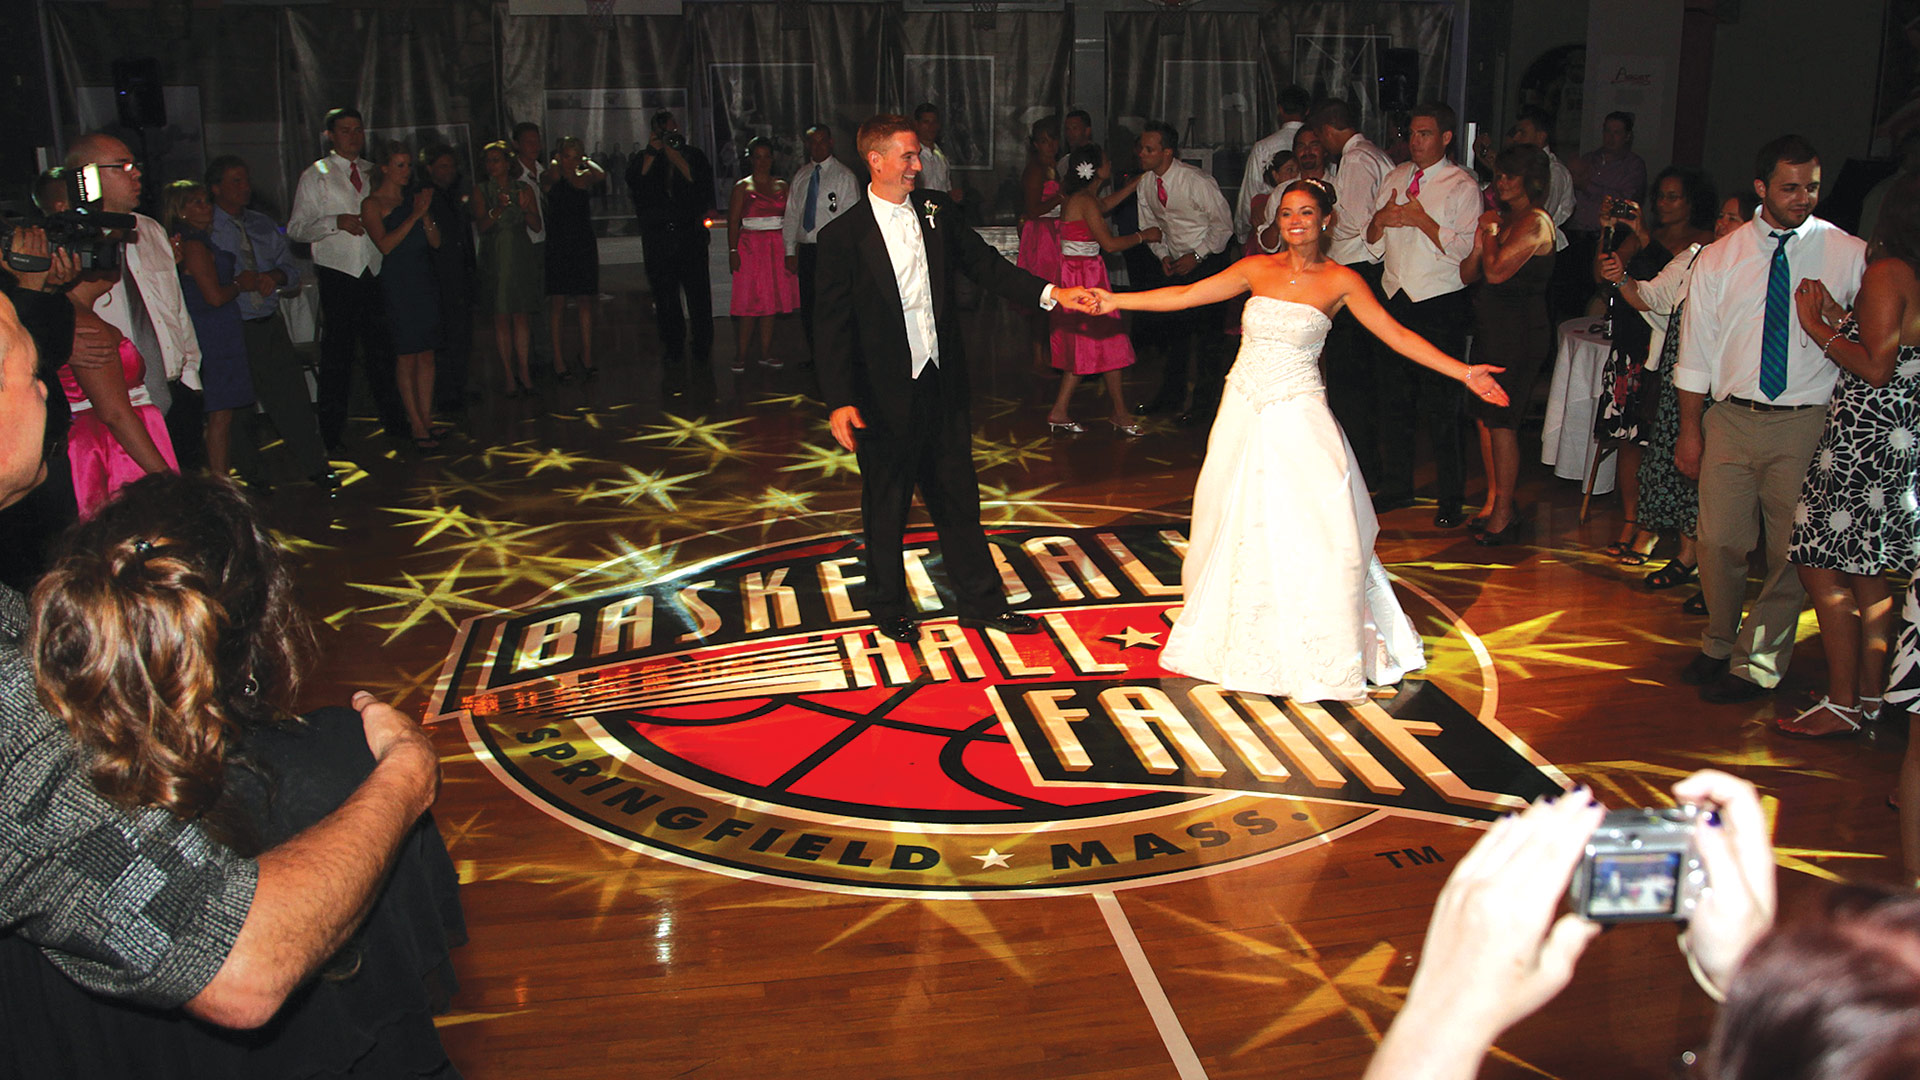 Center Court at the Hall has hosted many types of events